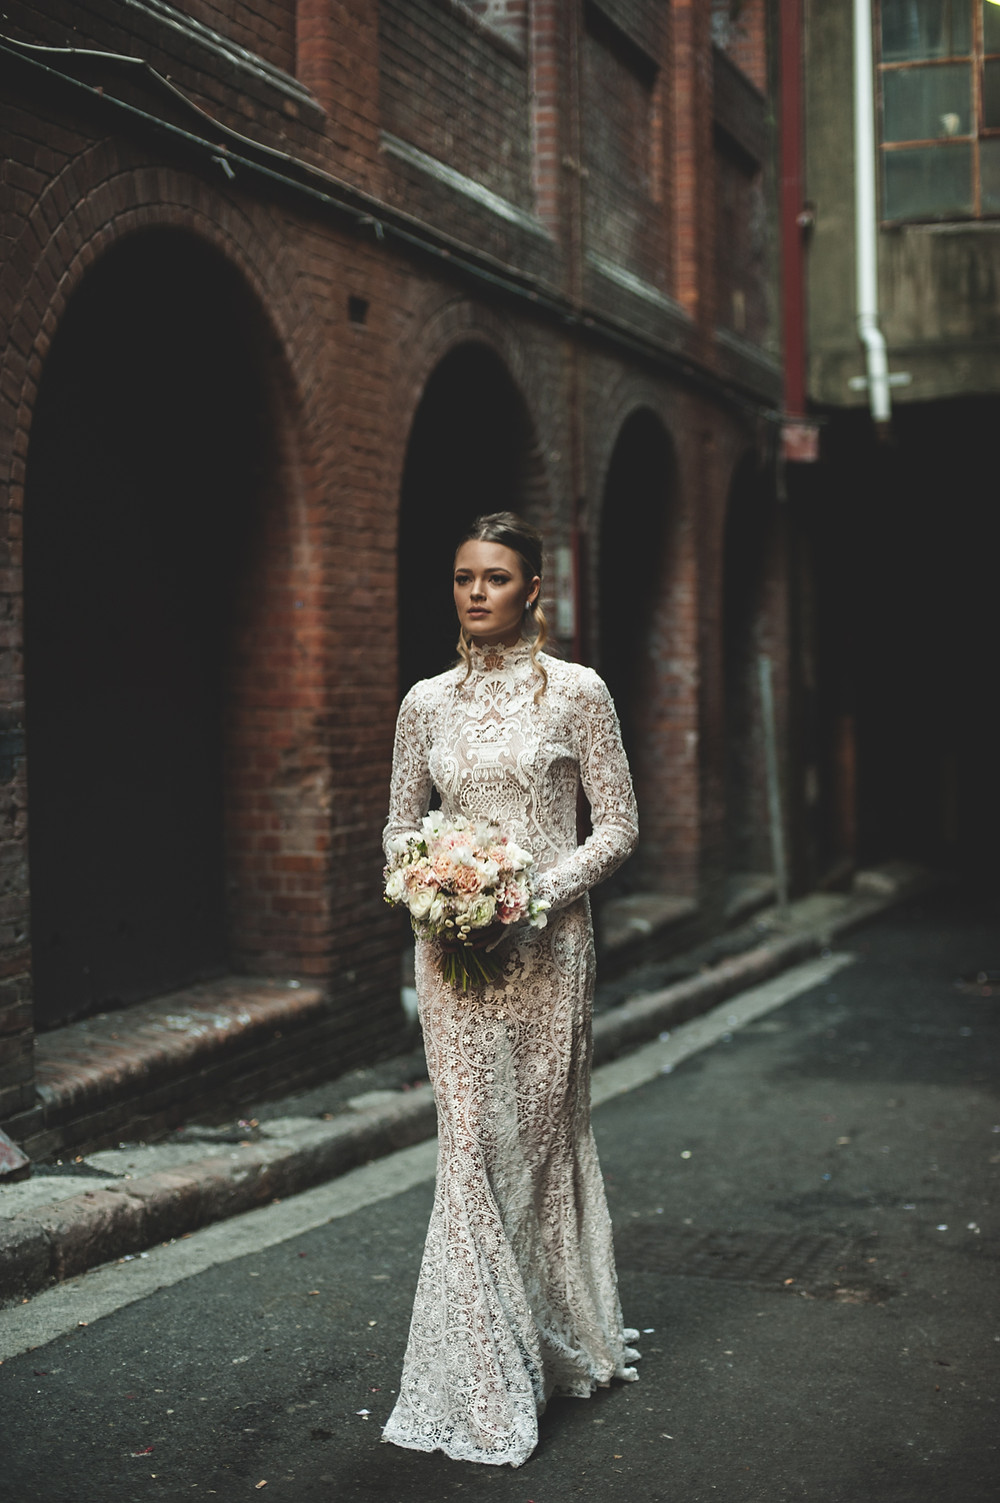 Jay Brosnan Photography | Sunshine Coast Photography | Sunshine Coast Wedding Photographer | Brisbane wedding photographer | Brisbane wedding | Brisbane wedding venue | Wedding Photographer | JBP